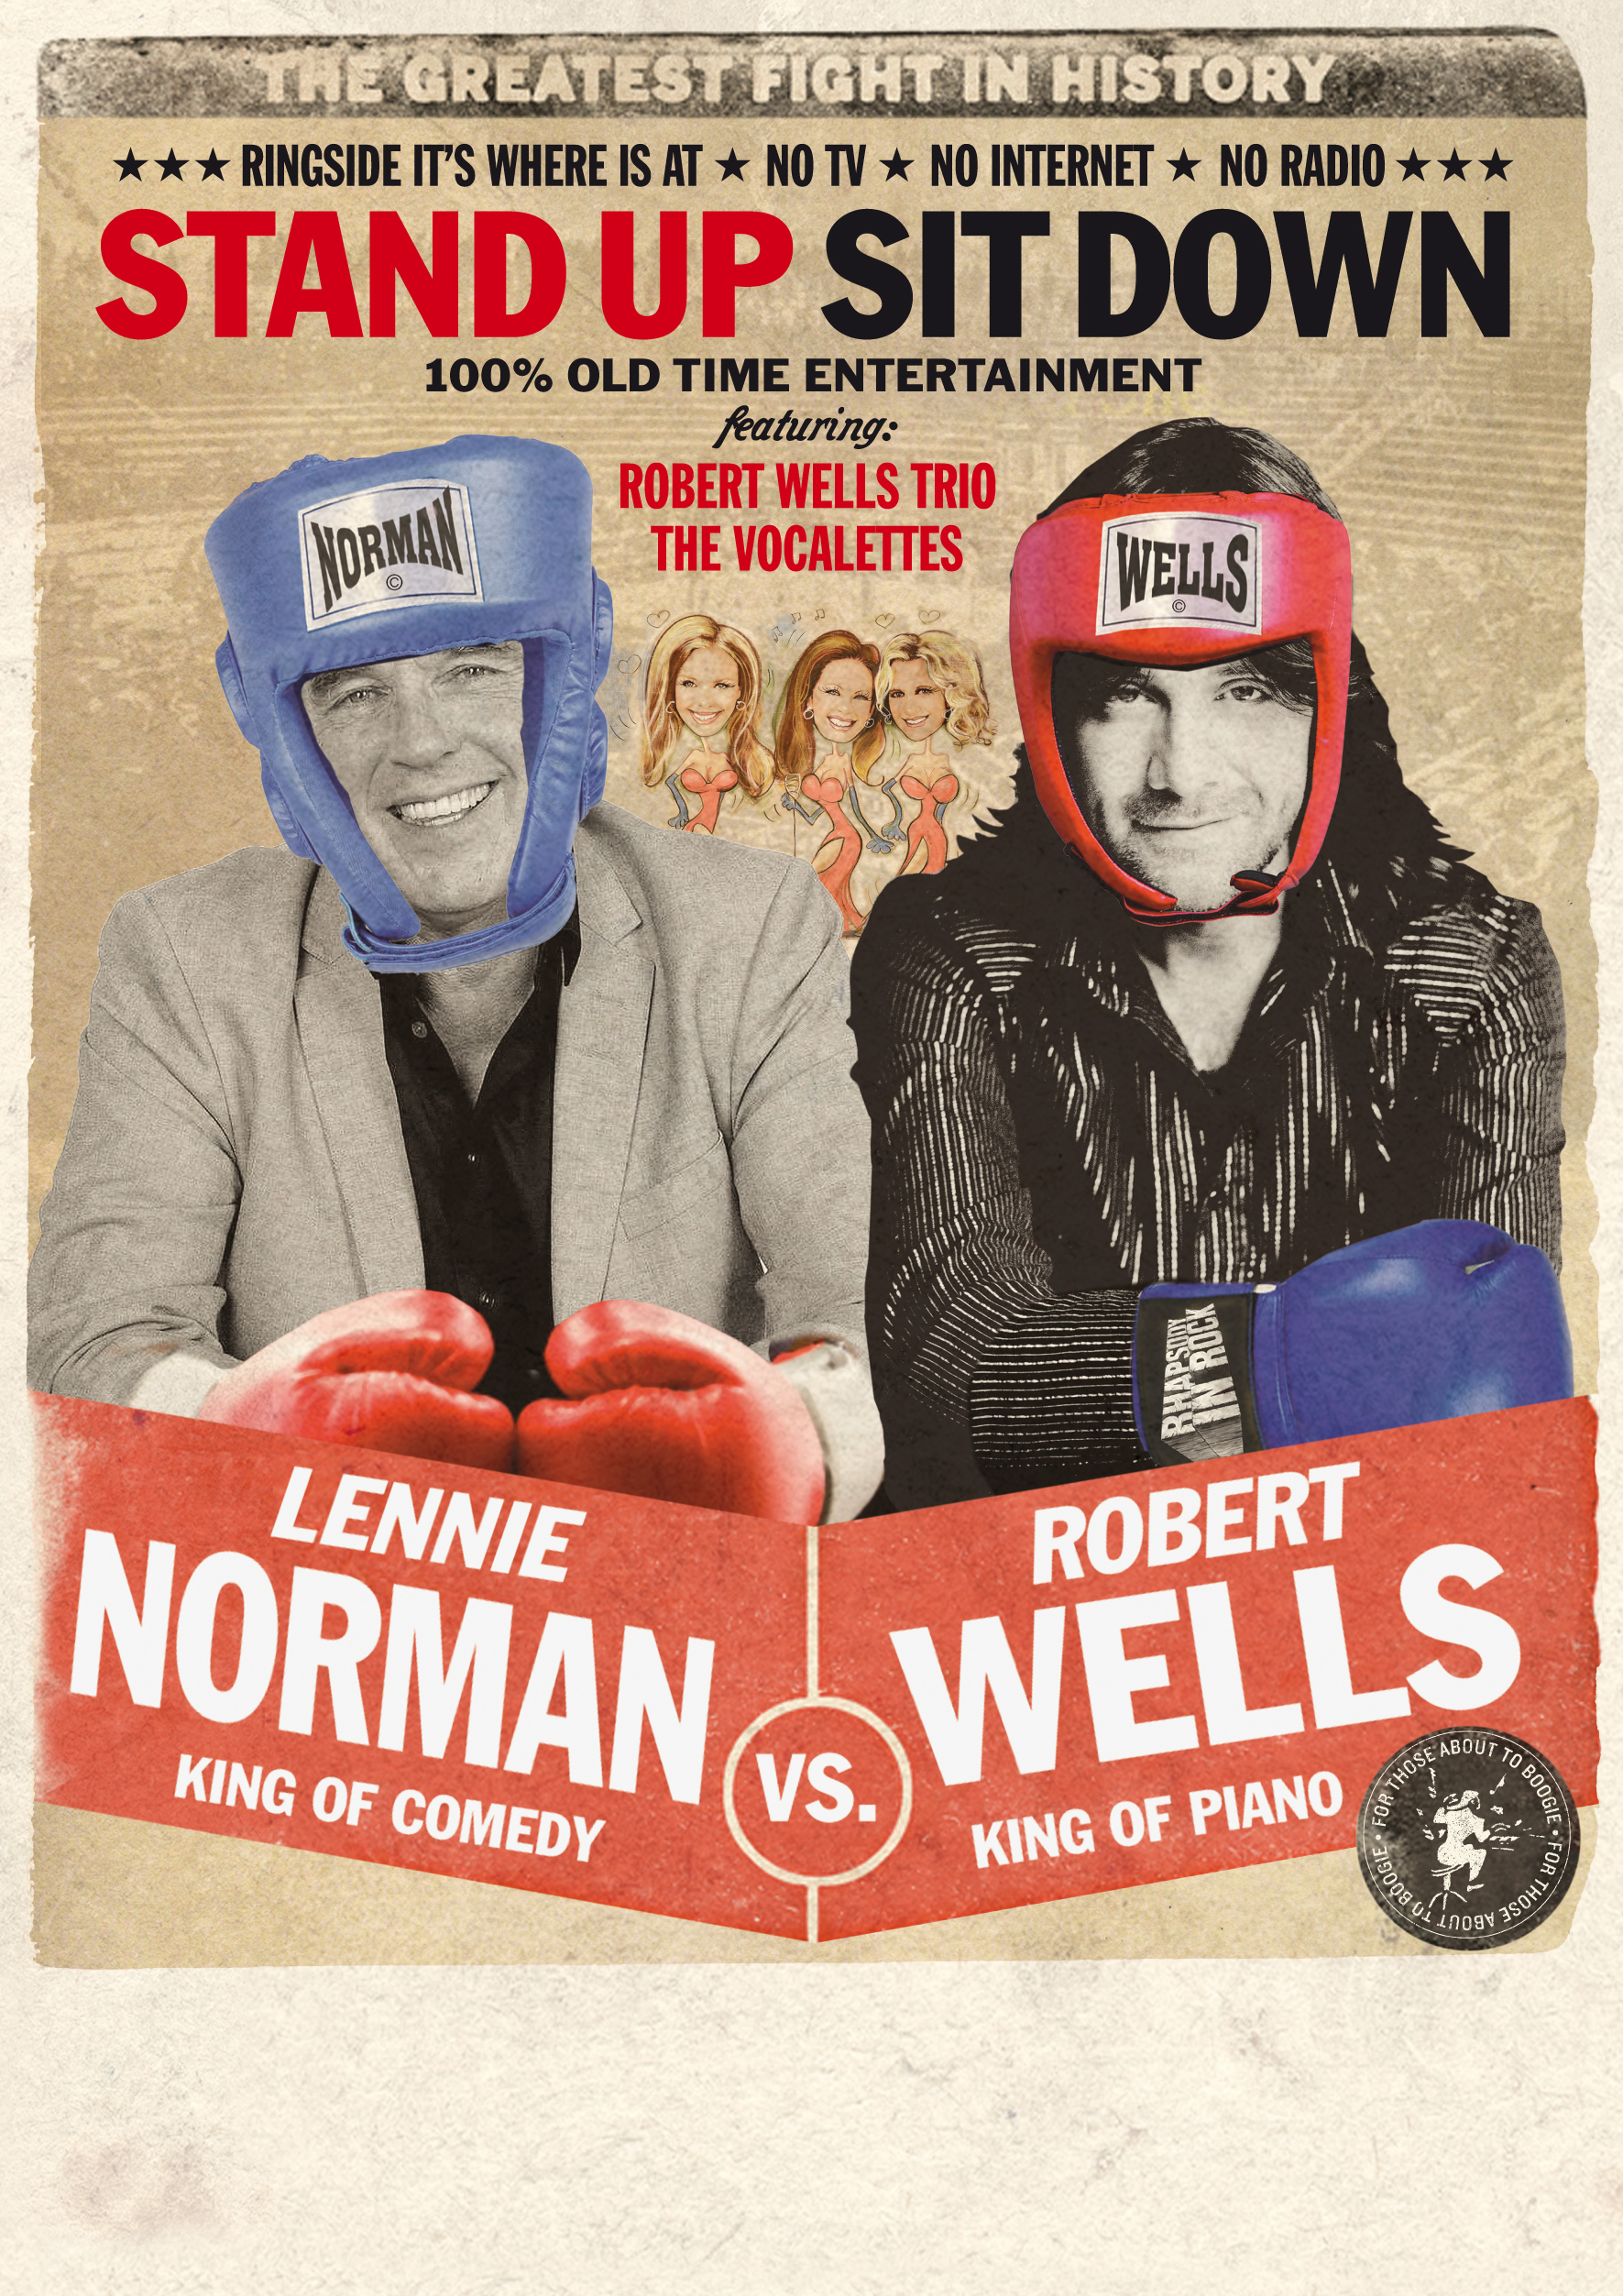 Lennie Norman vs Robert Wells